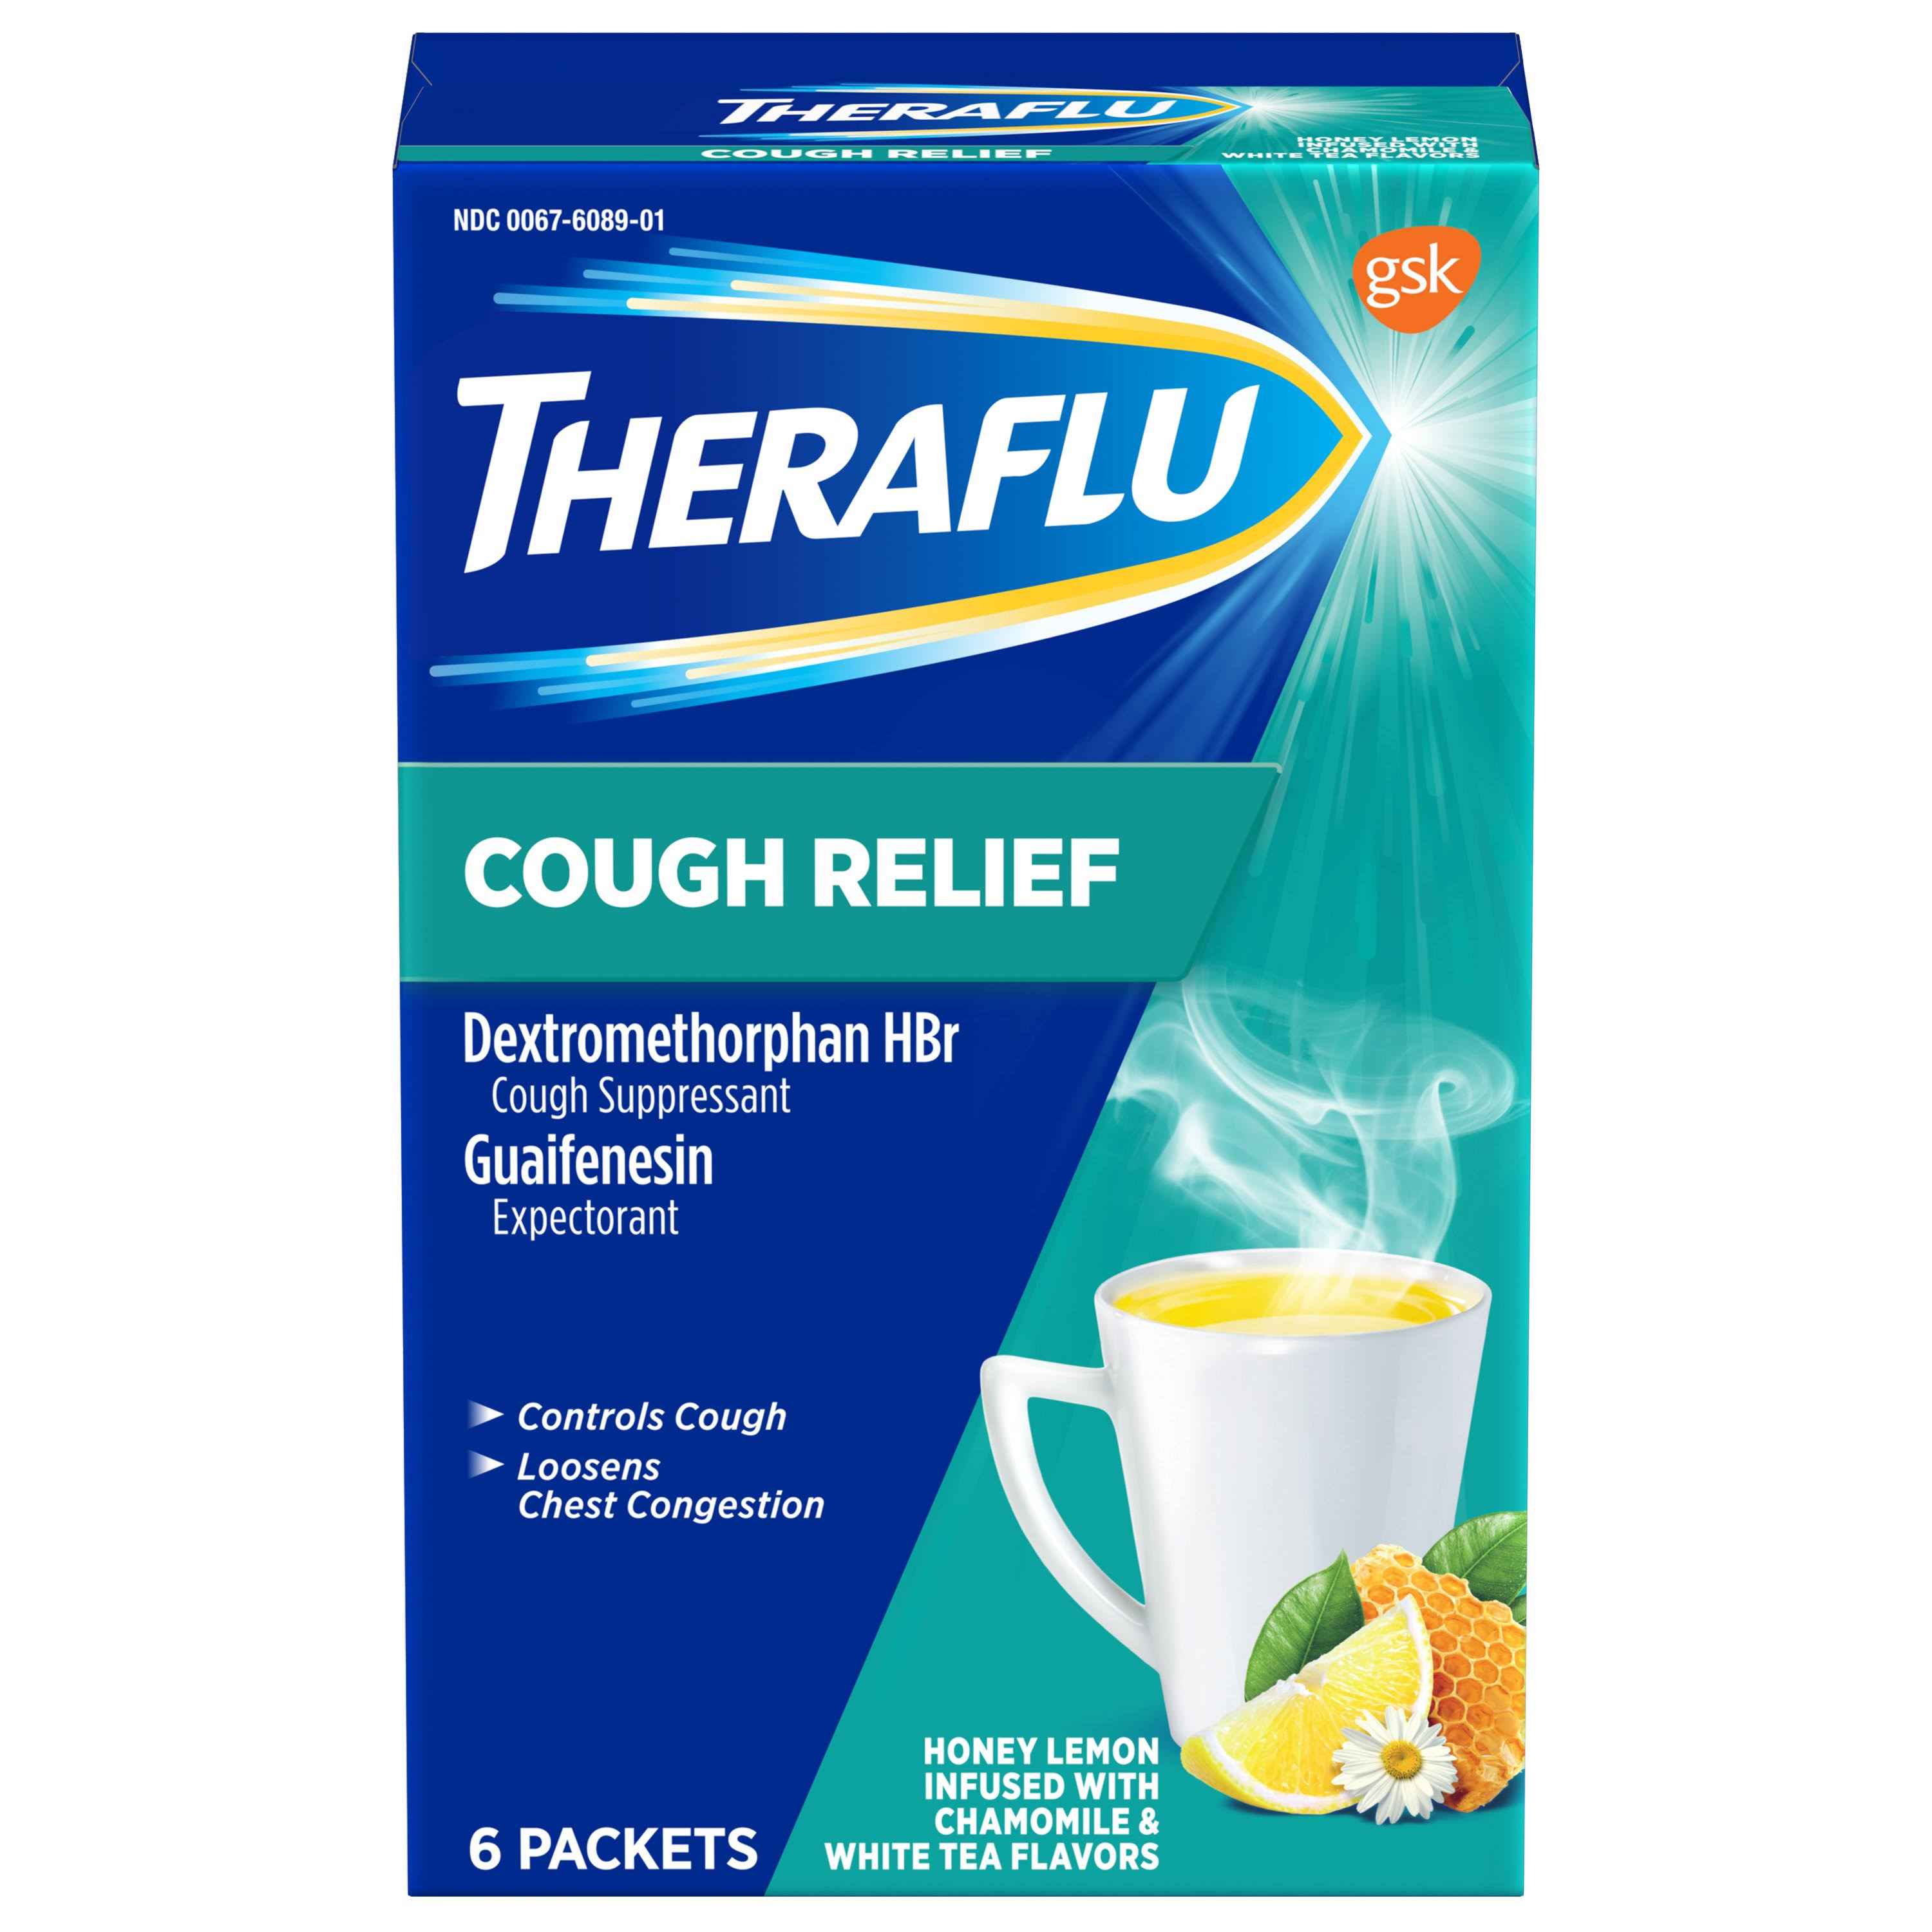 Theraflu Cough Relief, Packets - 6 packets